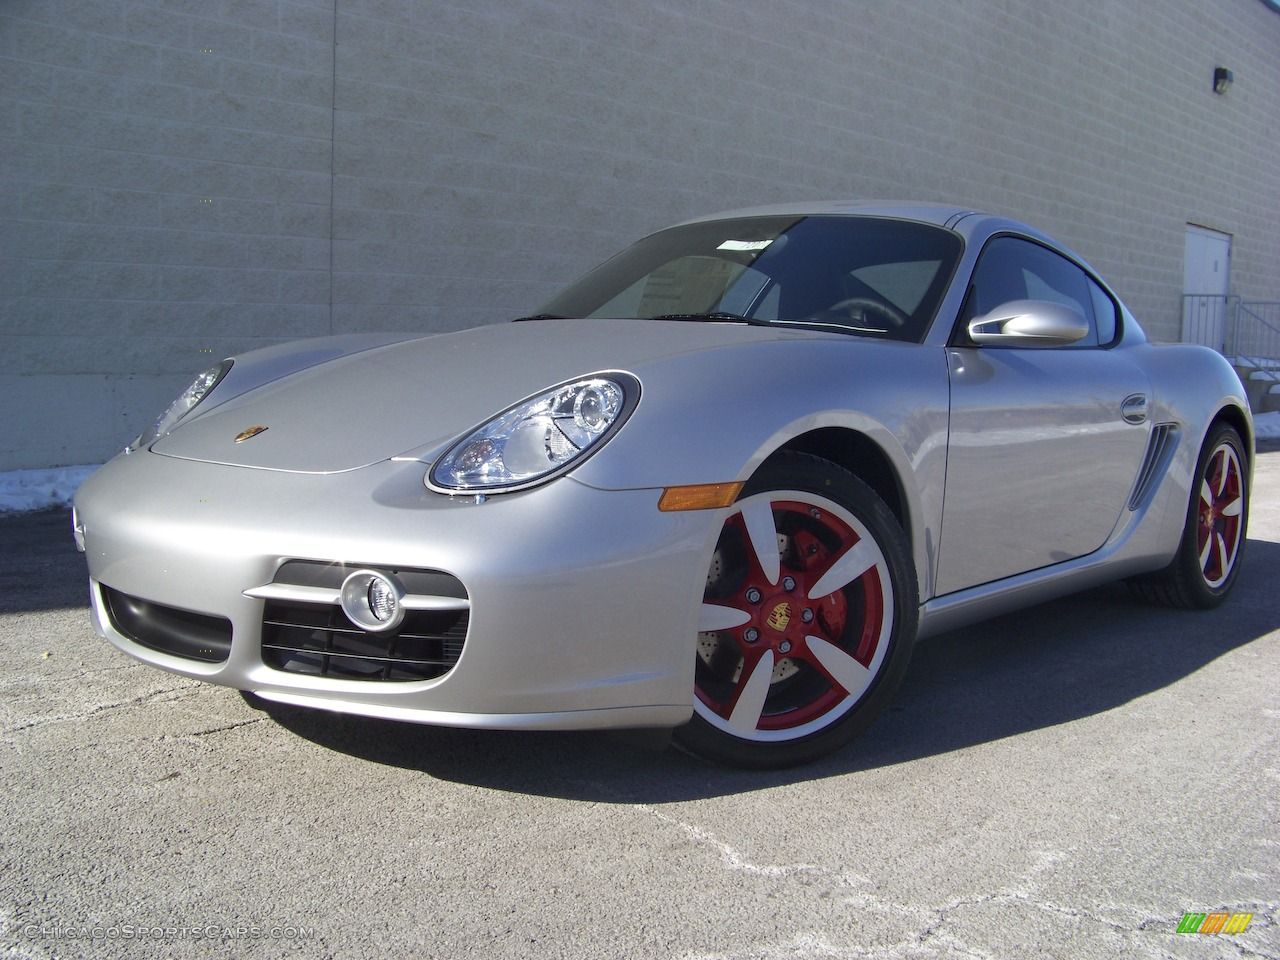 2009 porsche cayman s in arctic silver metallic photo 2 uxxxxx cars. Black Bedroom Furniture Sets. Home Design Ideas